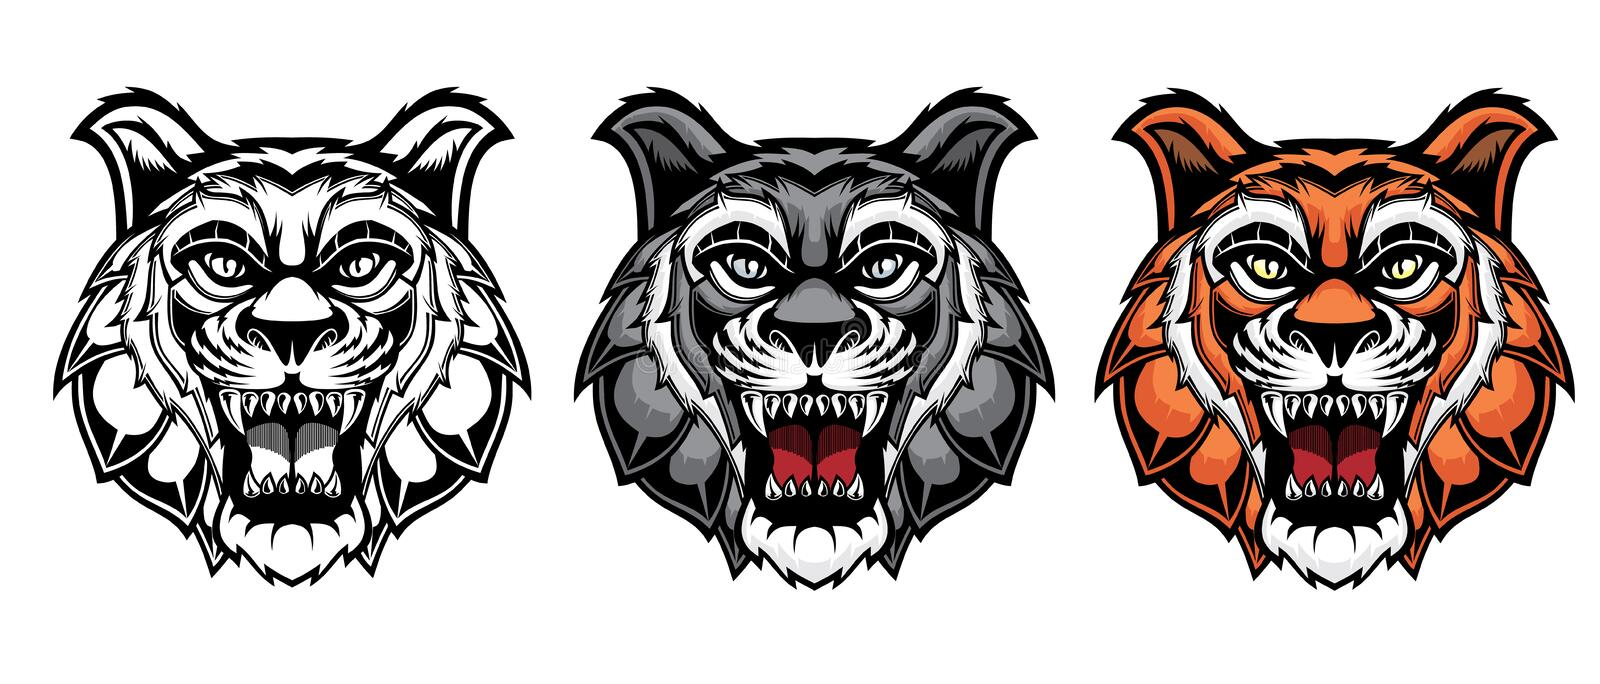 Set of growling tiger heads royalty free illustration